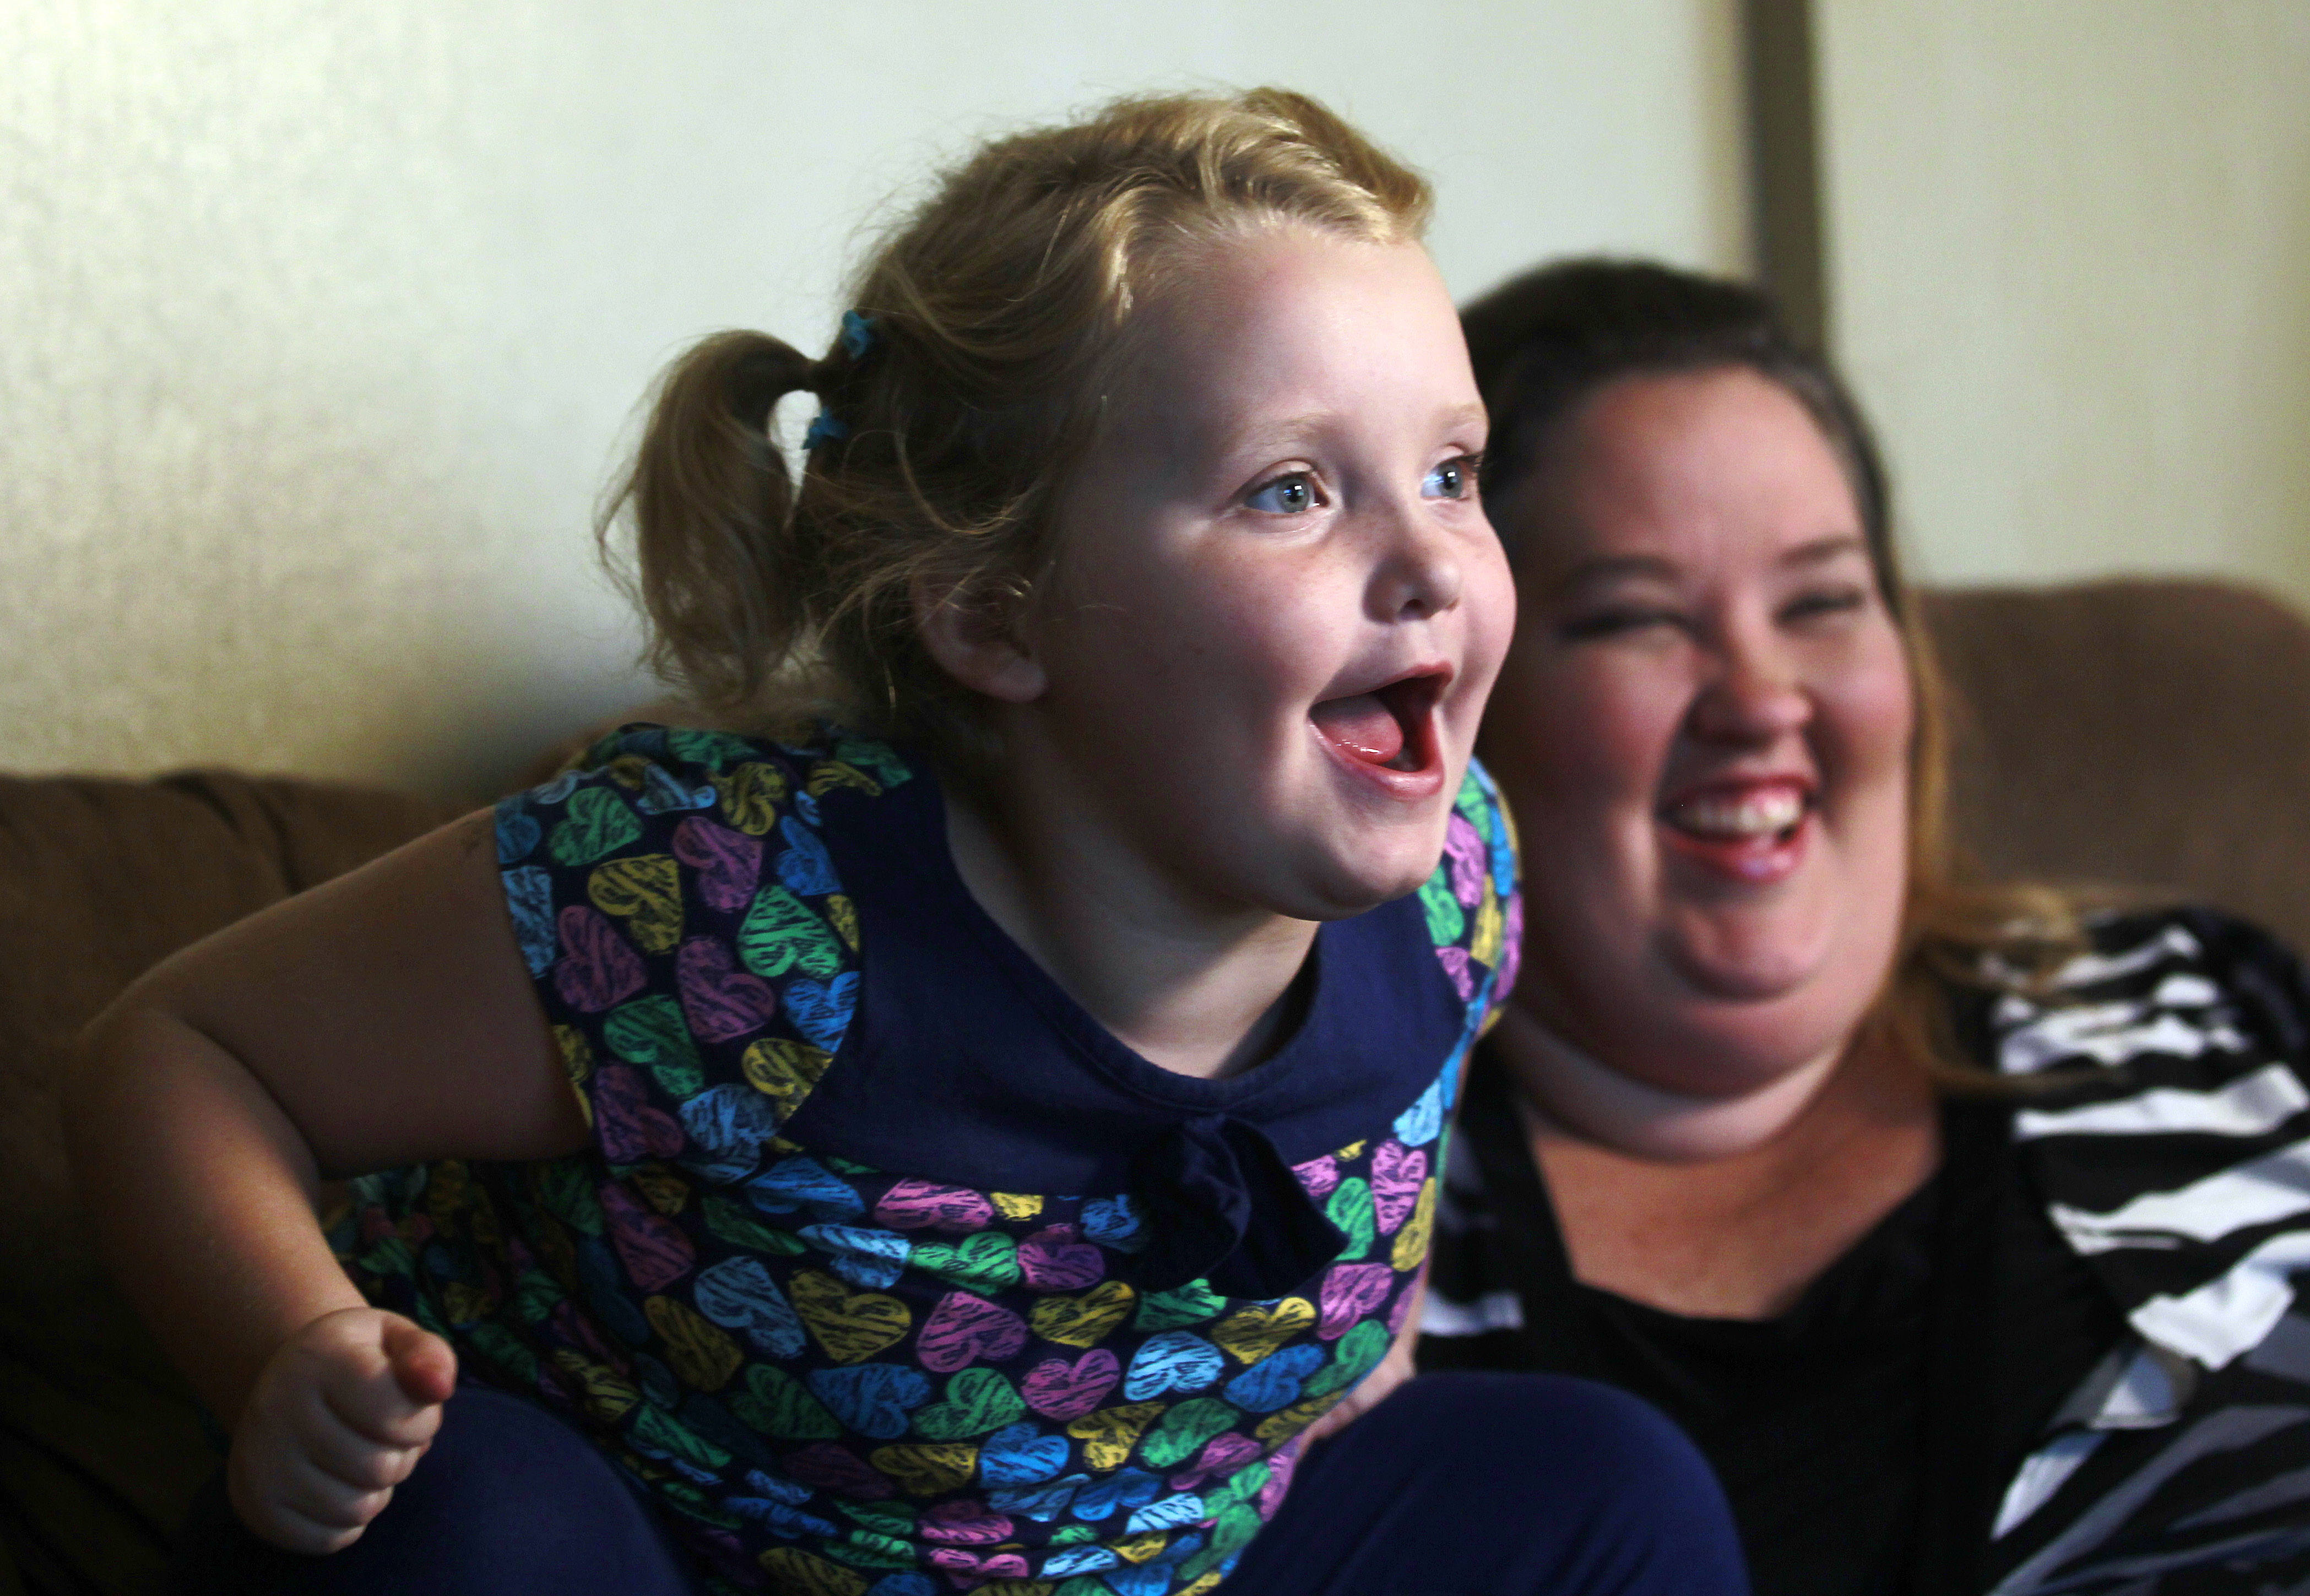 Alana  Honey Boo Boo  Thompson speaks during an interview as her mother, June Shannon, looks on in her home in McIntyre, Ga. on Oct. 24, 2014.